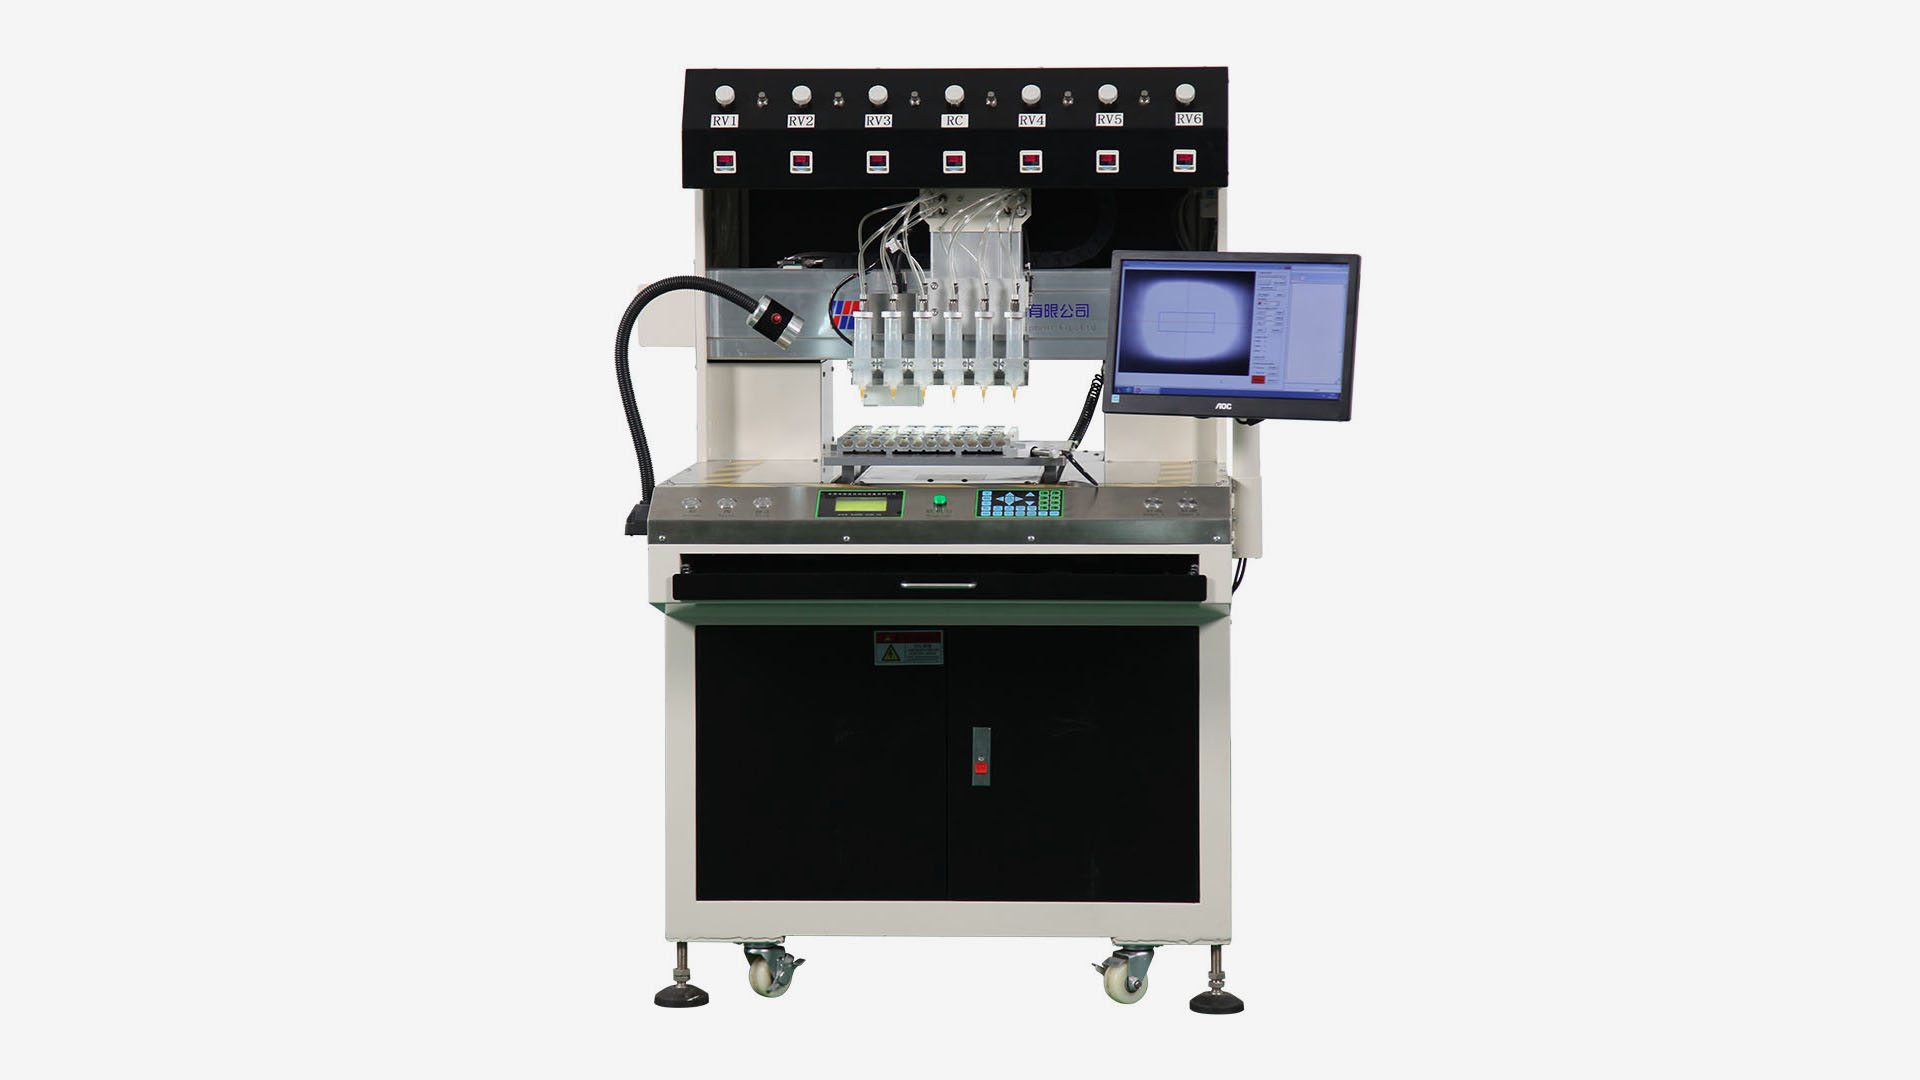 The 7th generation of precision coloring machine